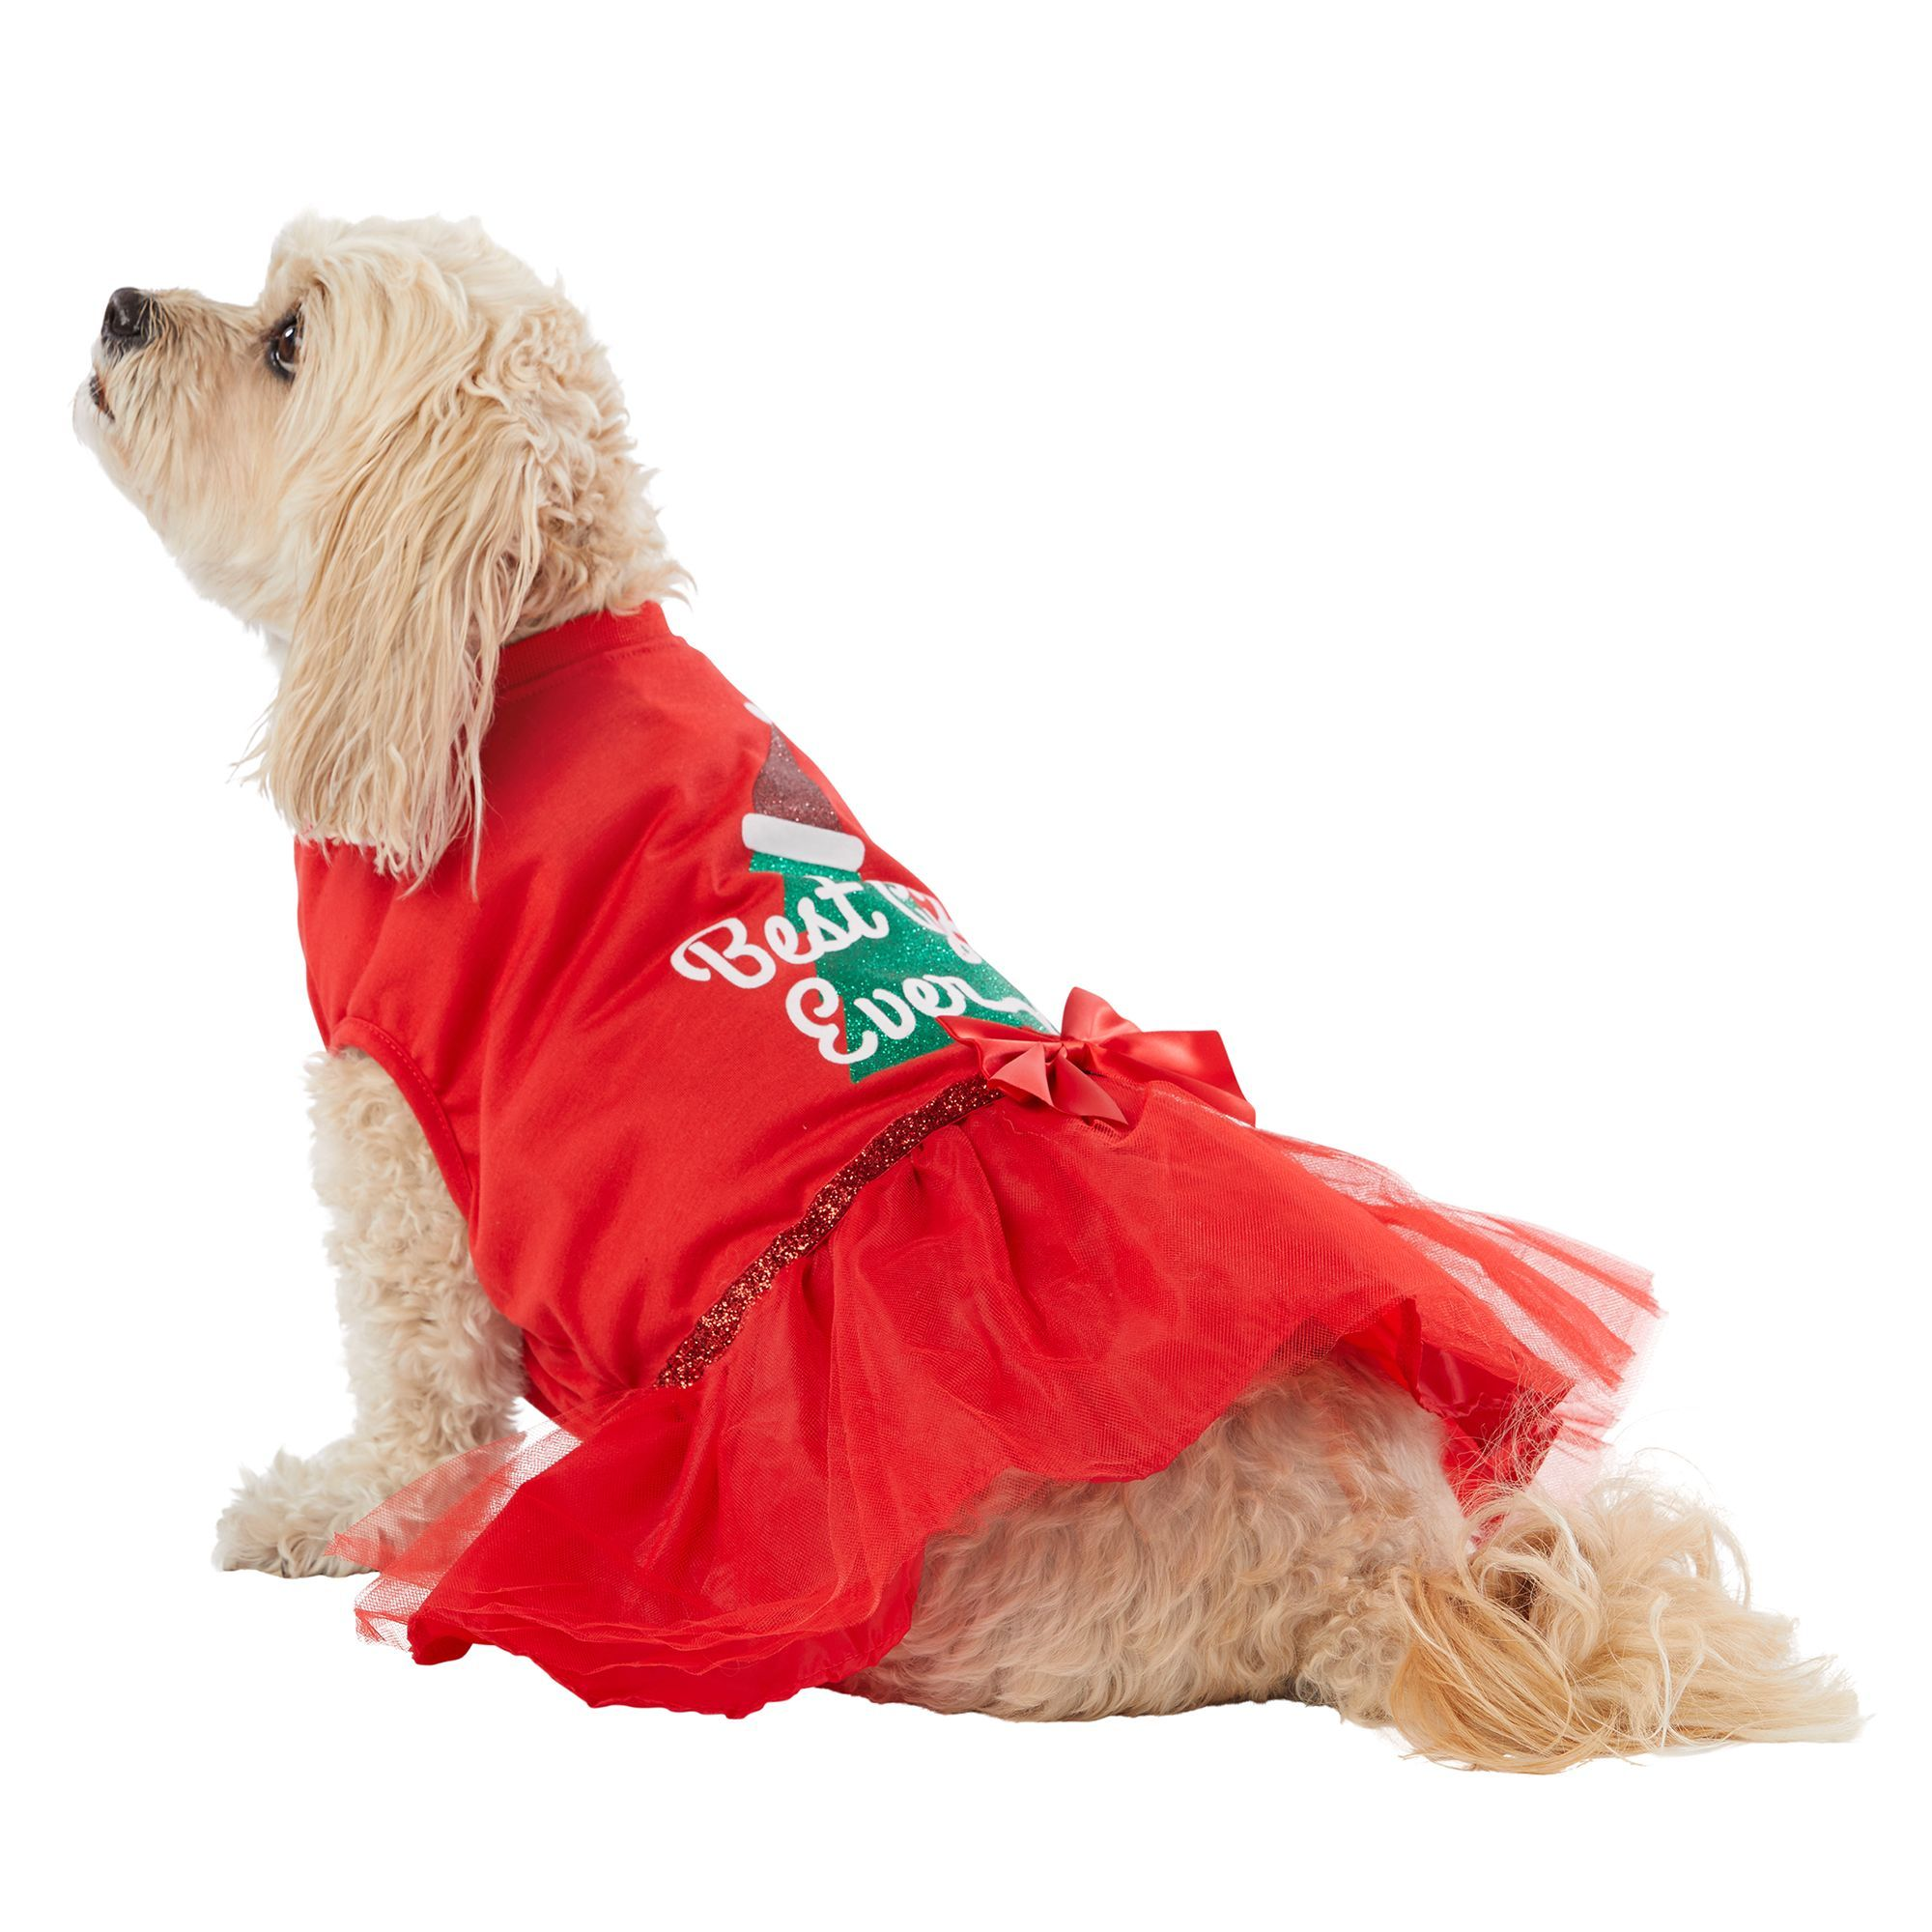 Merry And Bright Holiday Best Gift Ever Tulle Pet Dress Size 2x Small Merry Bright Green Red Wash Pet Dress Pet Spray Pets